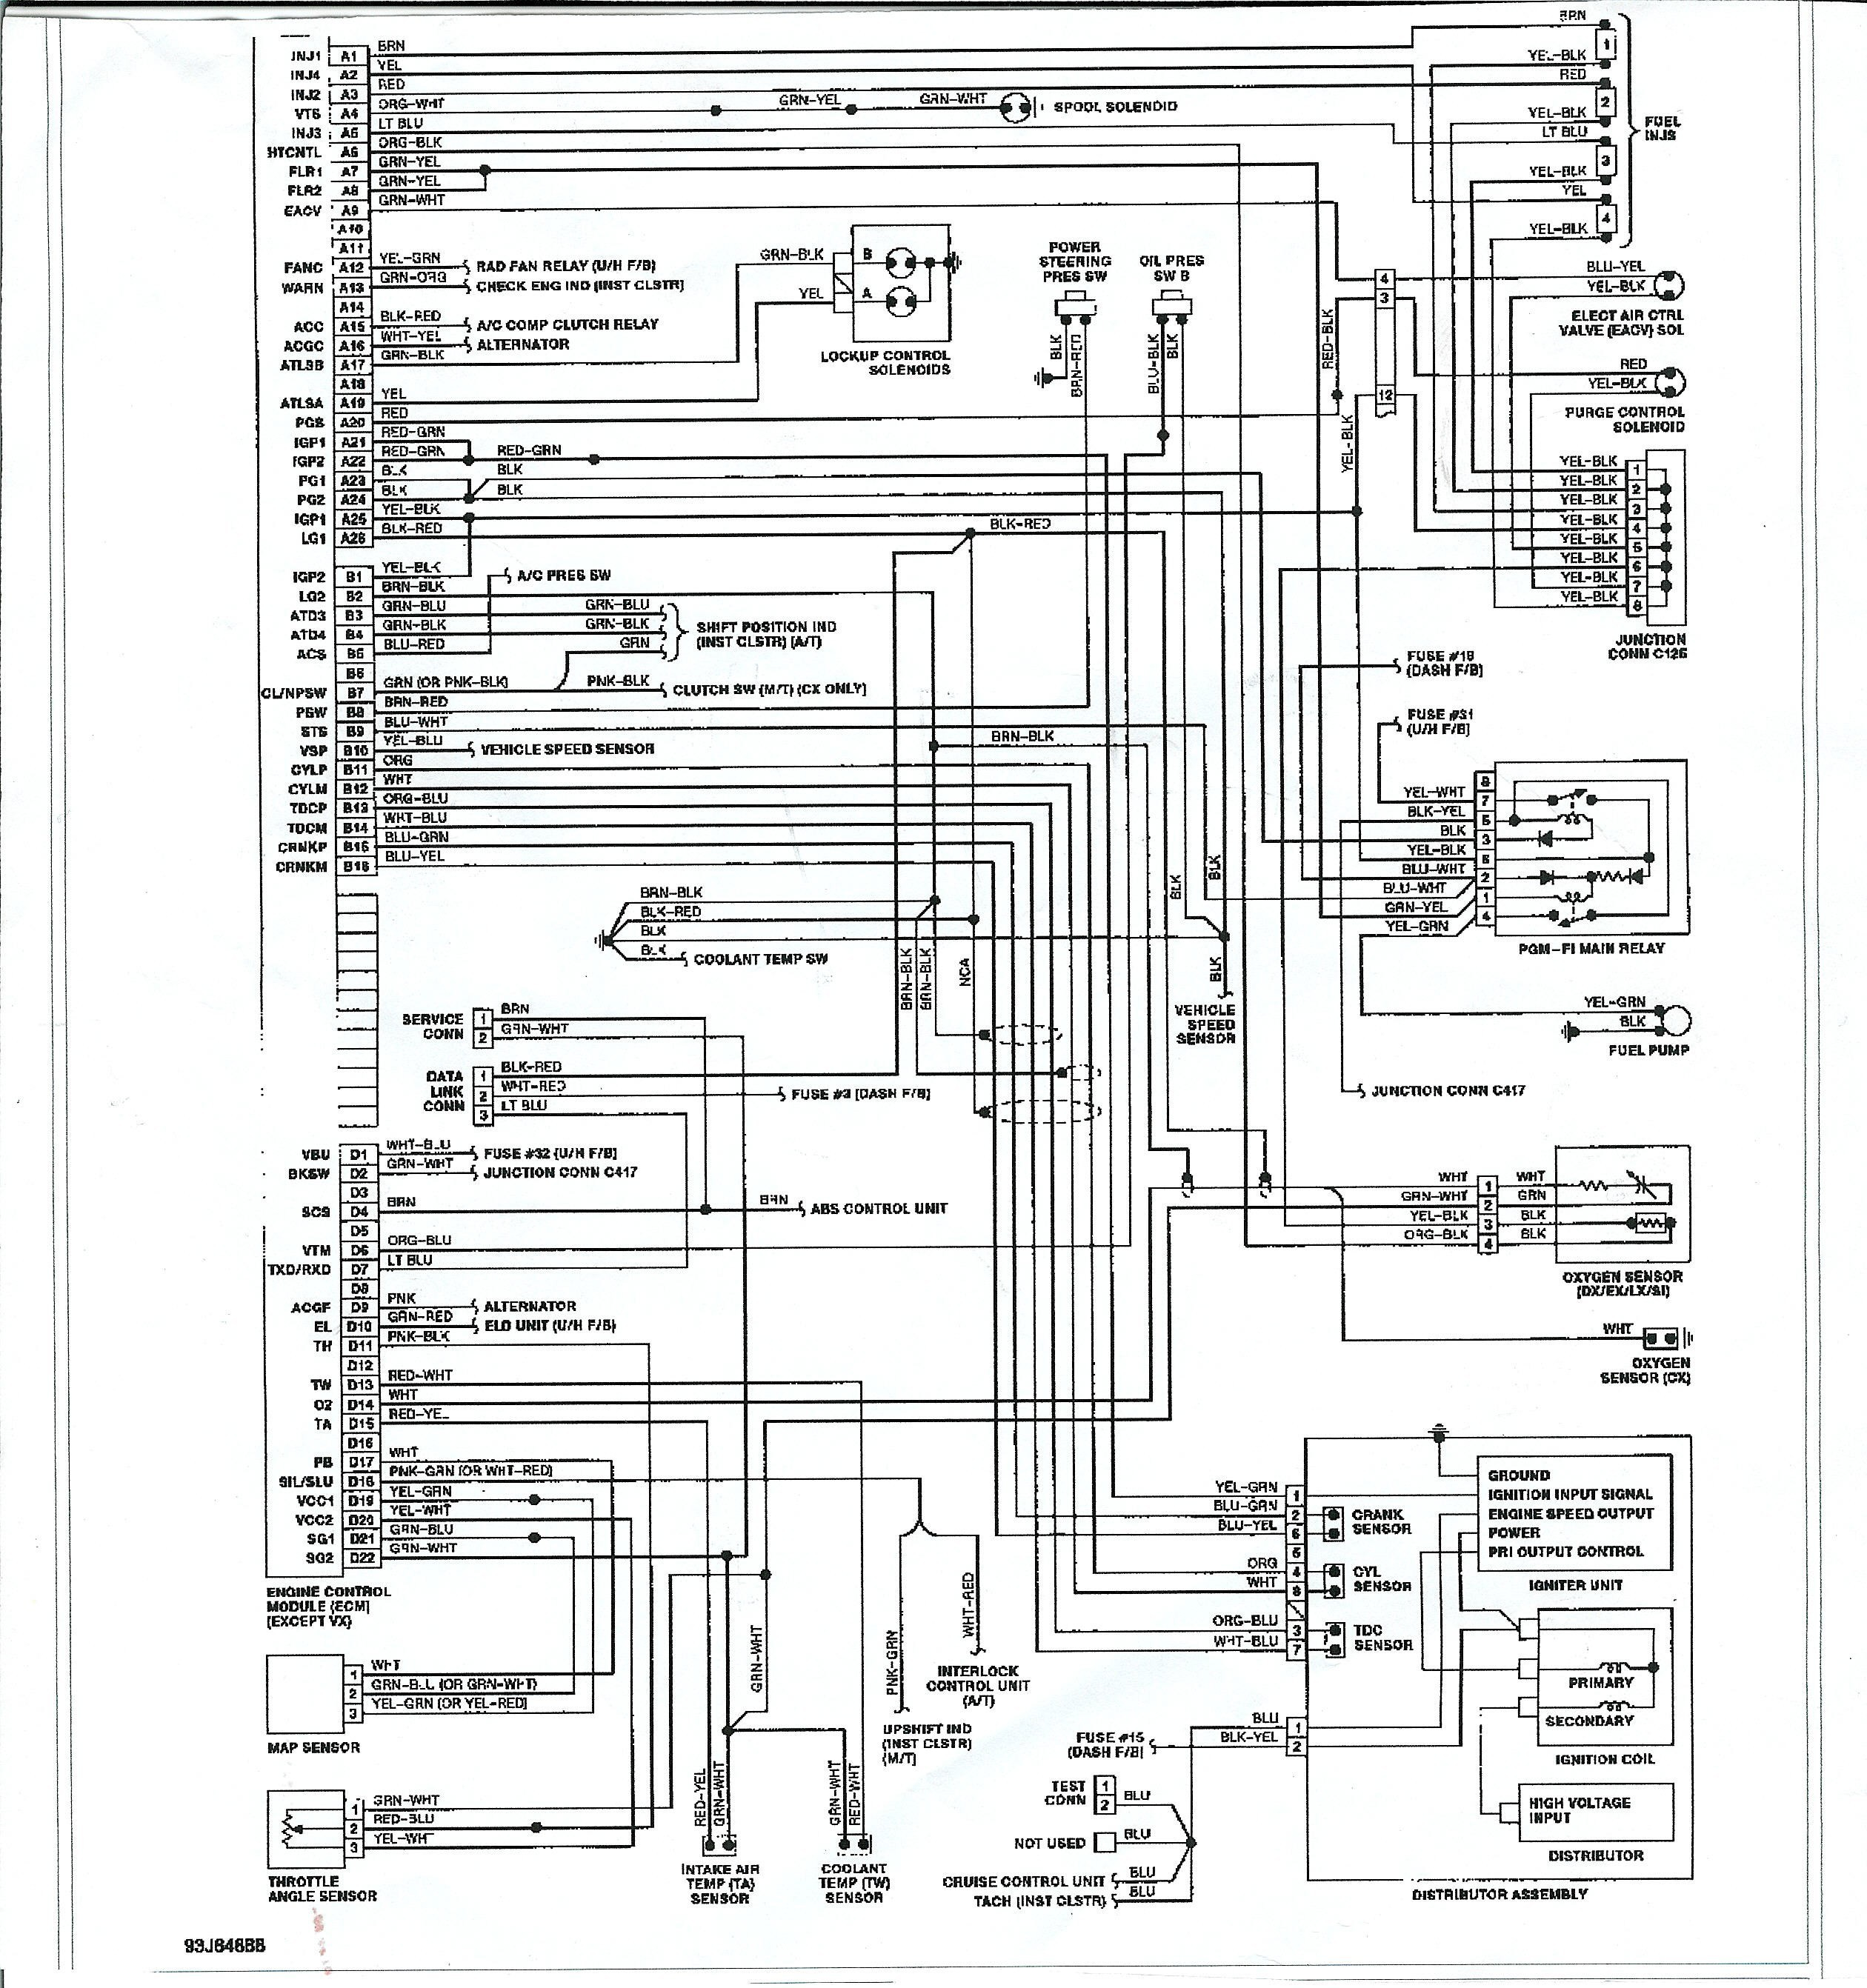 2002 Civic Engine Diagram Honda Civic Transmission Wiring Diagram Wiring Diagram Database Of 2002 Civic Engine Diagram